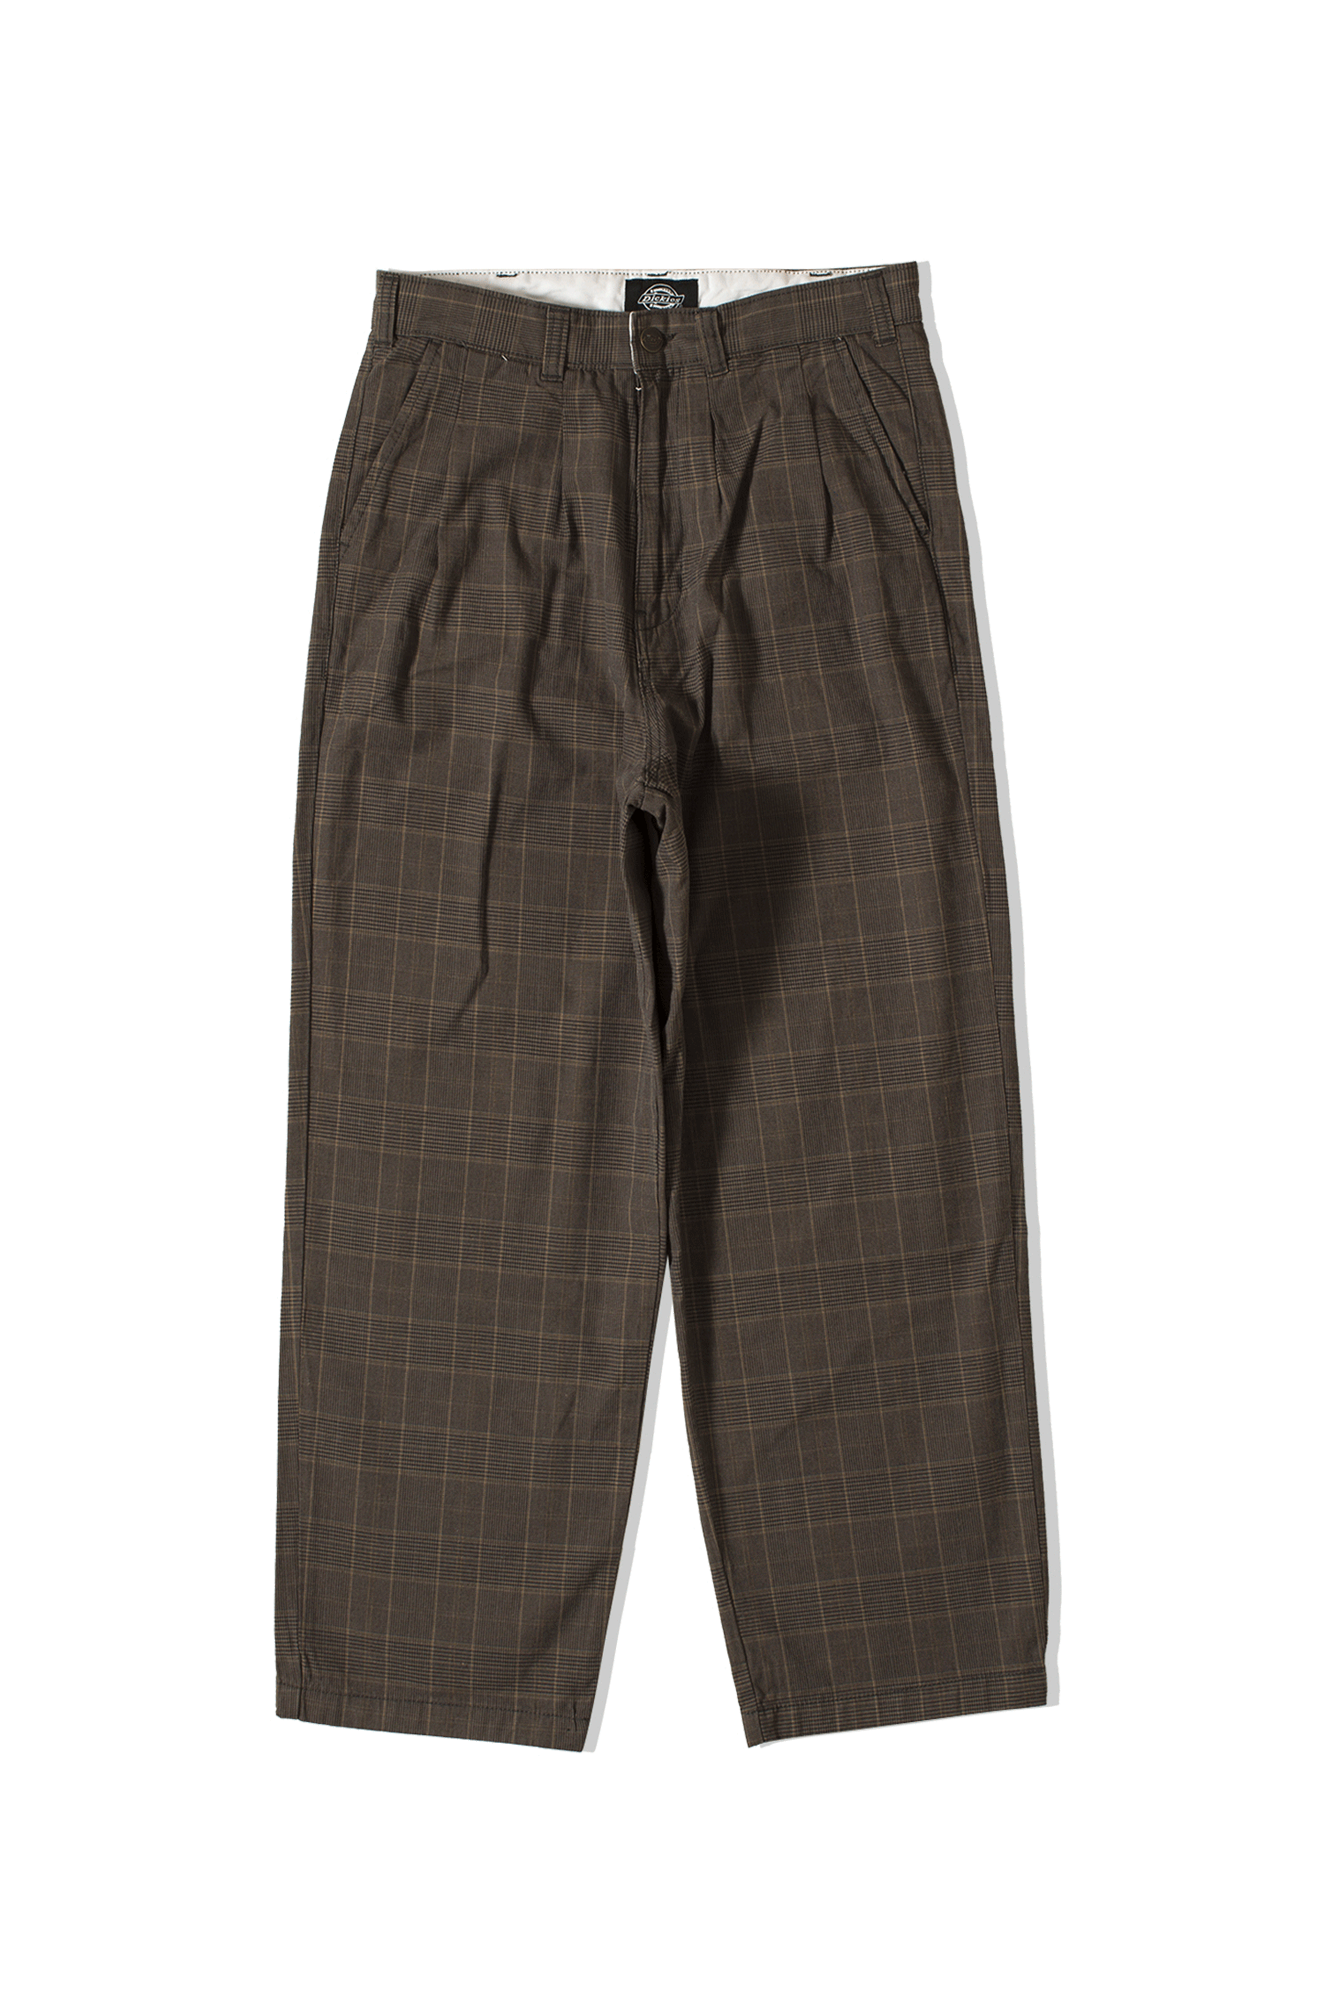 Dickies Trousers Artemus Brown 684190027#000#DB#31/30 - One Block Down